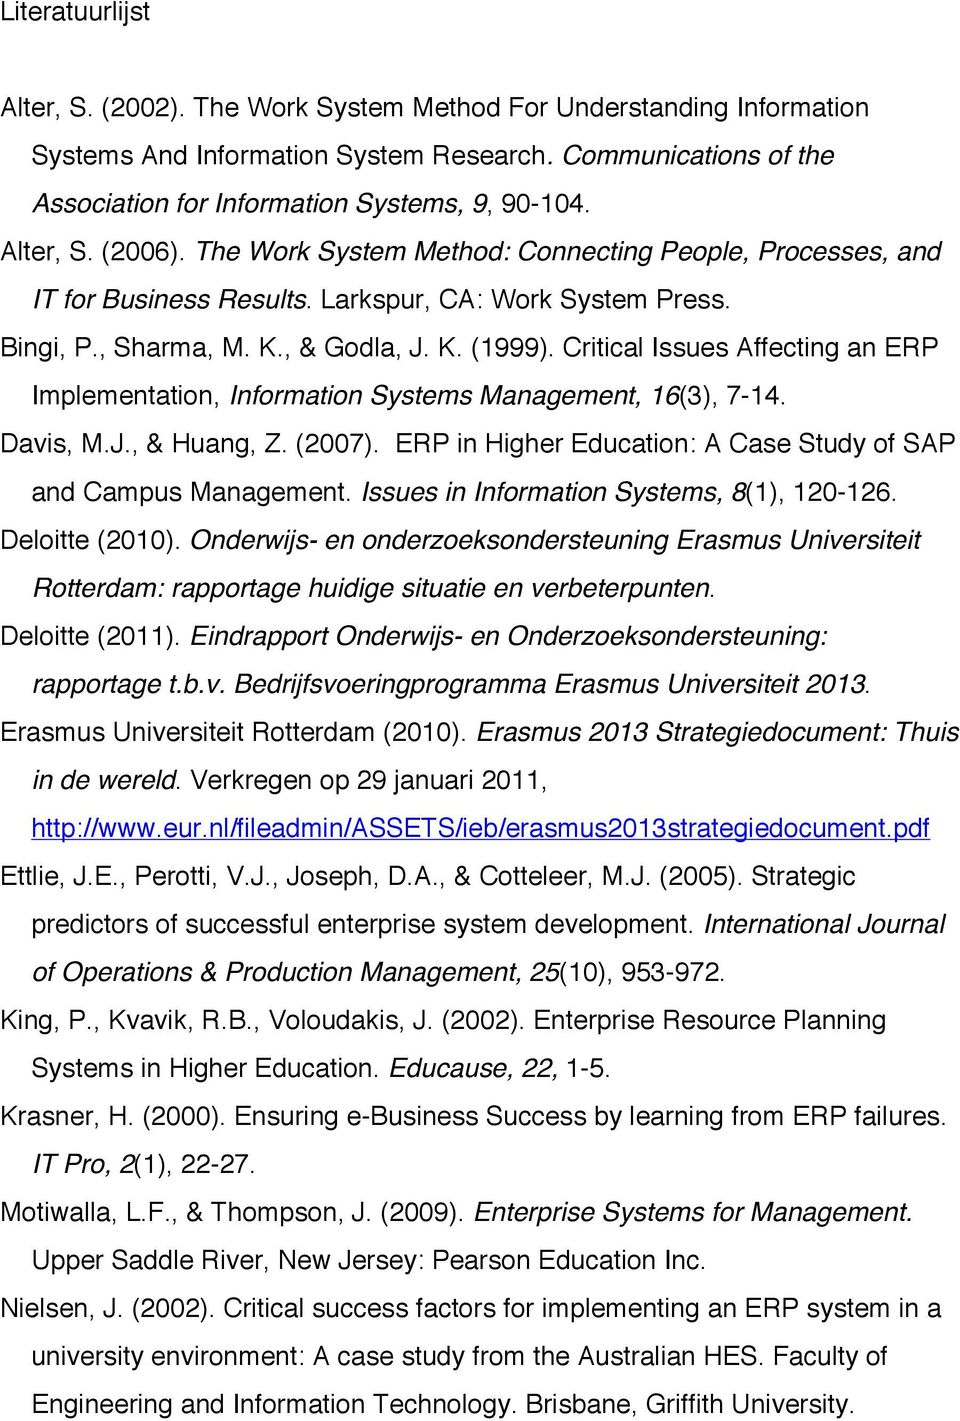 Critical Issues Affecting an ERP Implementation, Information Systems Management, 16(3), 7-14. Davis, M.J., & Huang, Z. (2007). ERP in Higher Education: A Case Study of SAP and Campus Management.